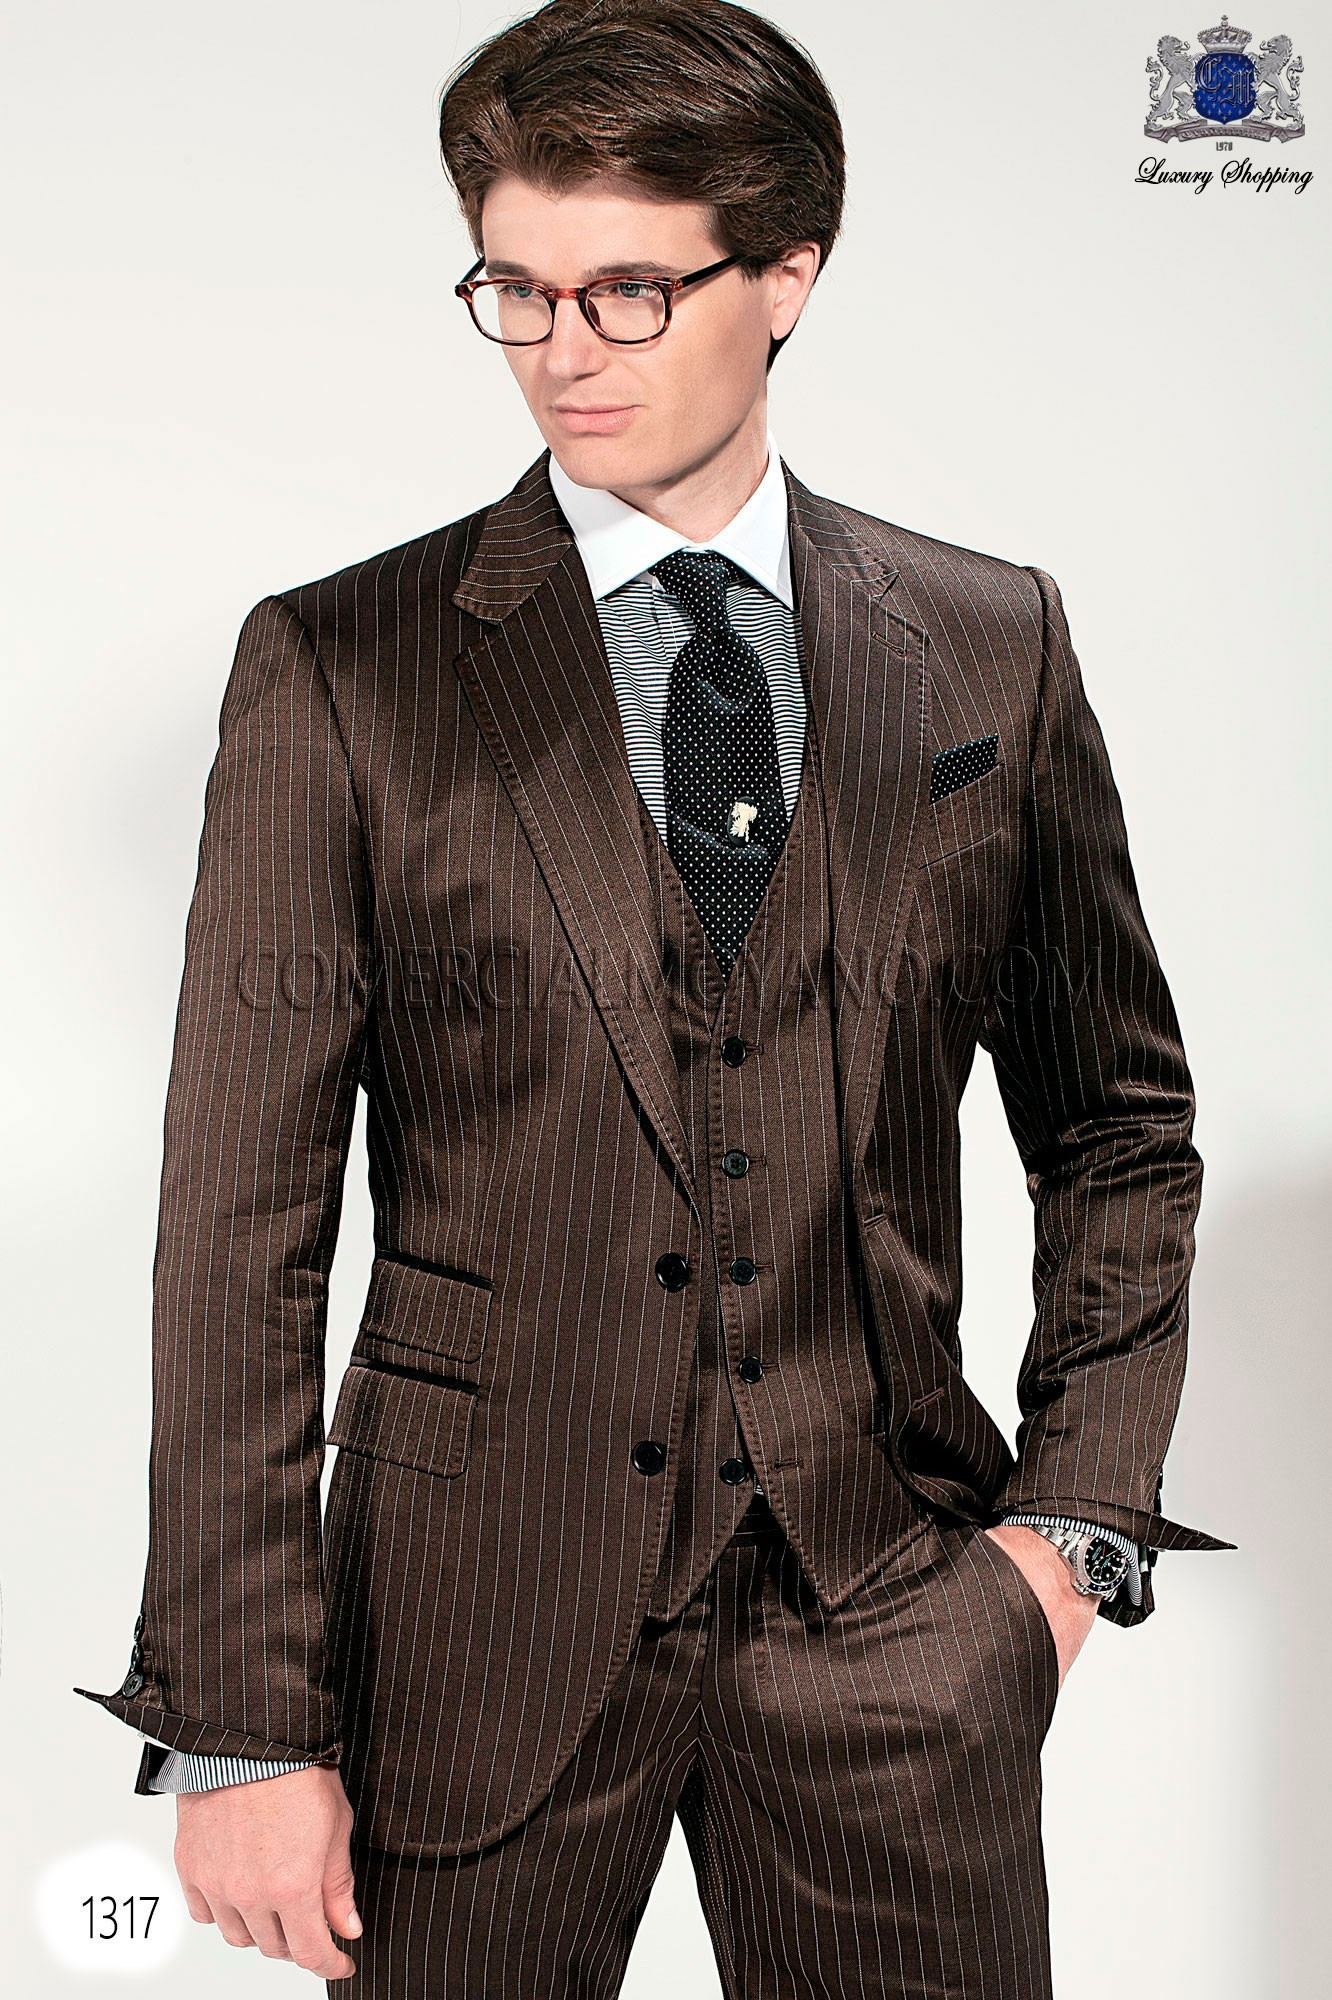 Gentleman brown men wedding suit model 1317 Ottavio Nuccio Gala